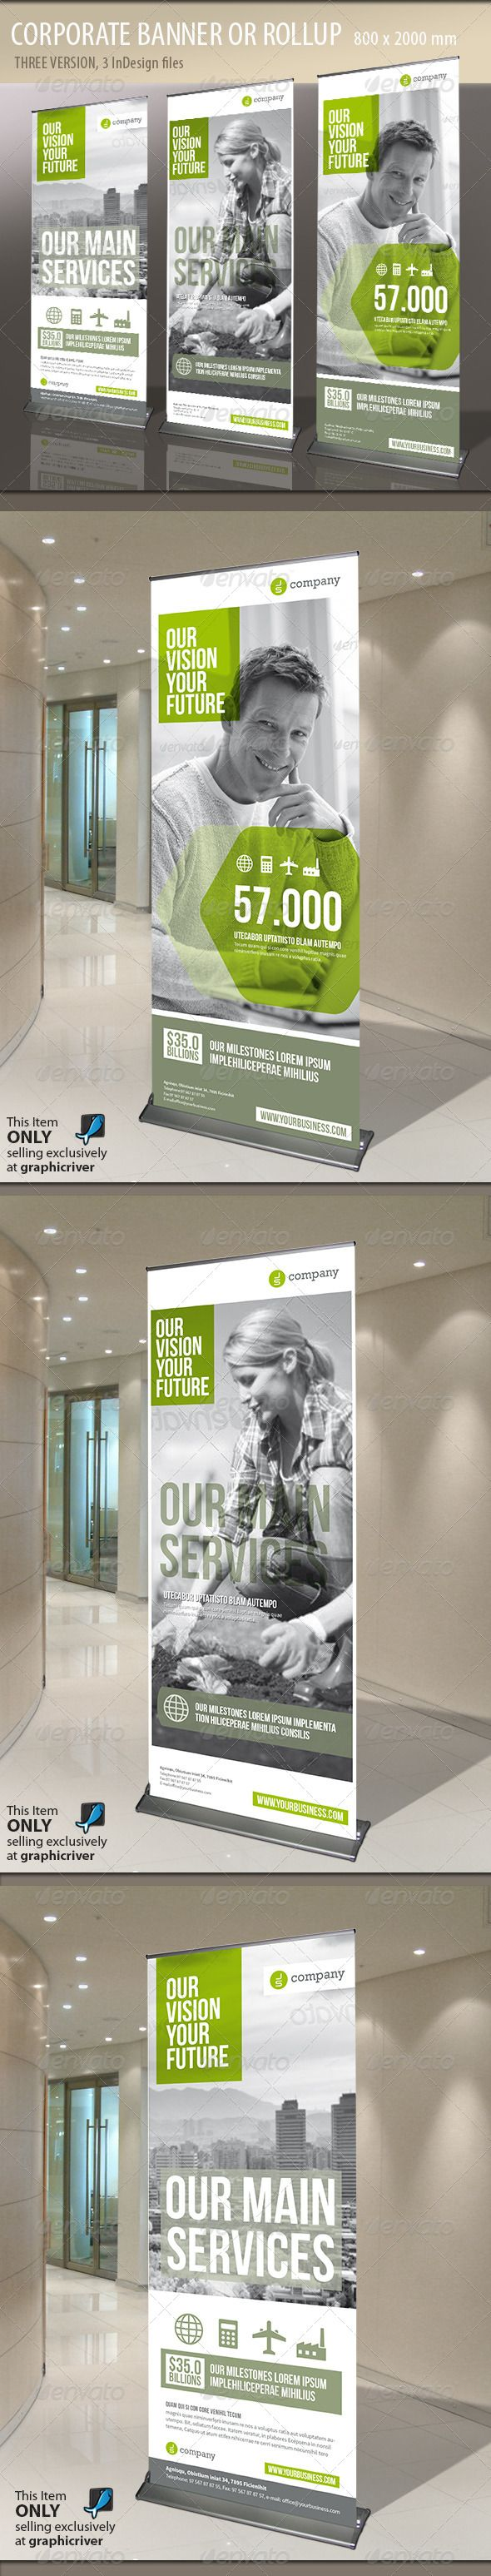 Corporate Banner or Rollup - Signage Print Templates